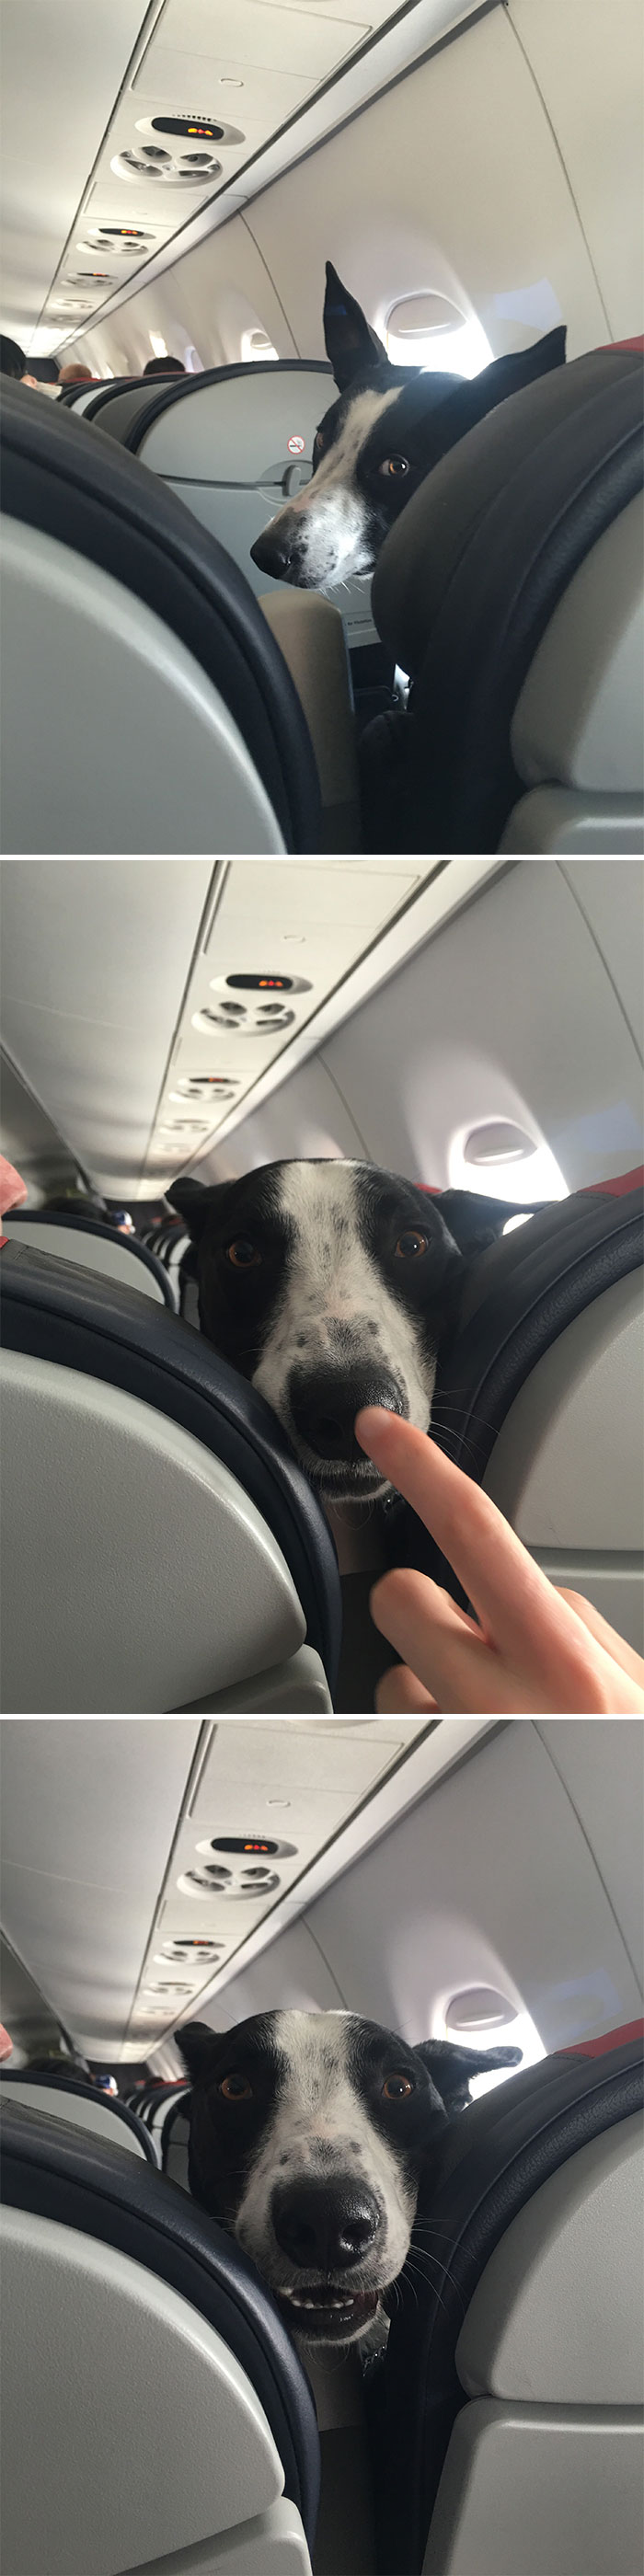 I See Your Dog On A Plane And Raise You A Booped Dog On A Plane